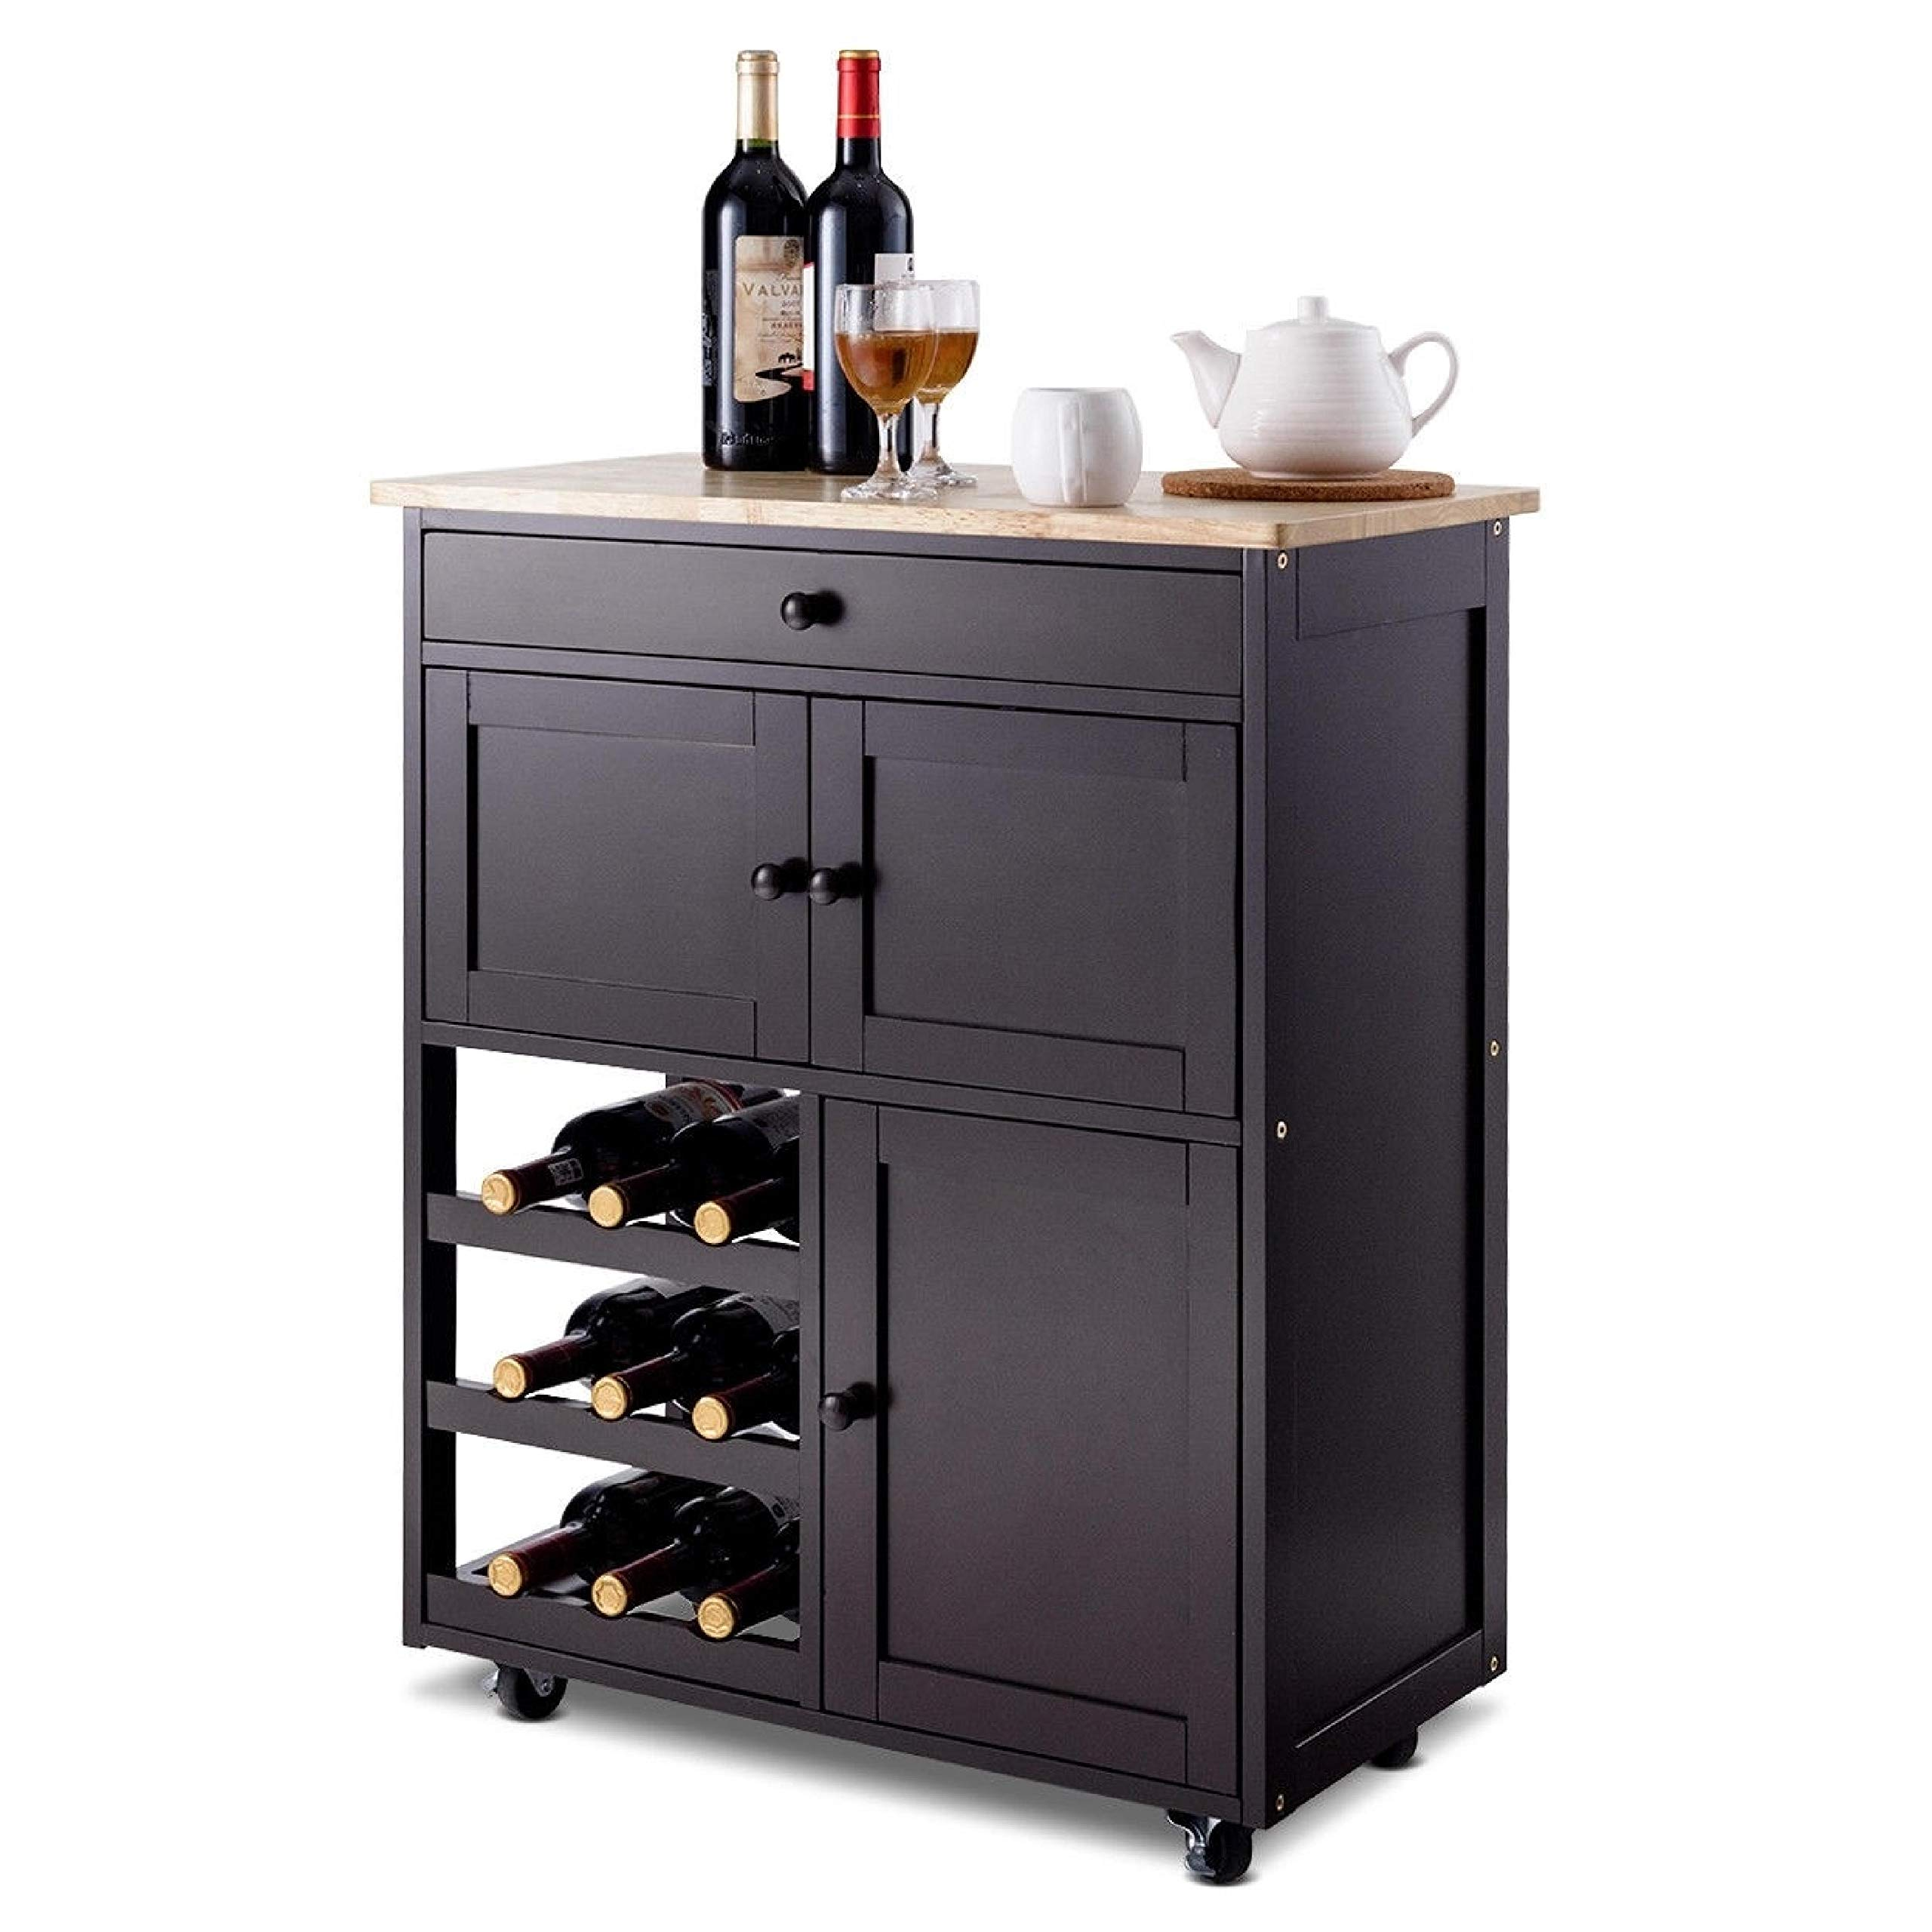 Brown Wood Mobile Kitchen Island Cart Cabinet with Wine Rack and Drawer, Brown Wood Mobile Kitchen Island Cart Cabinet with Wine Rack and Drawer